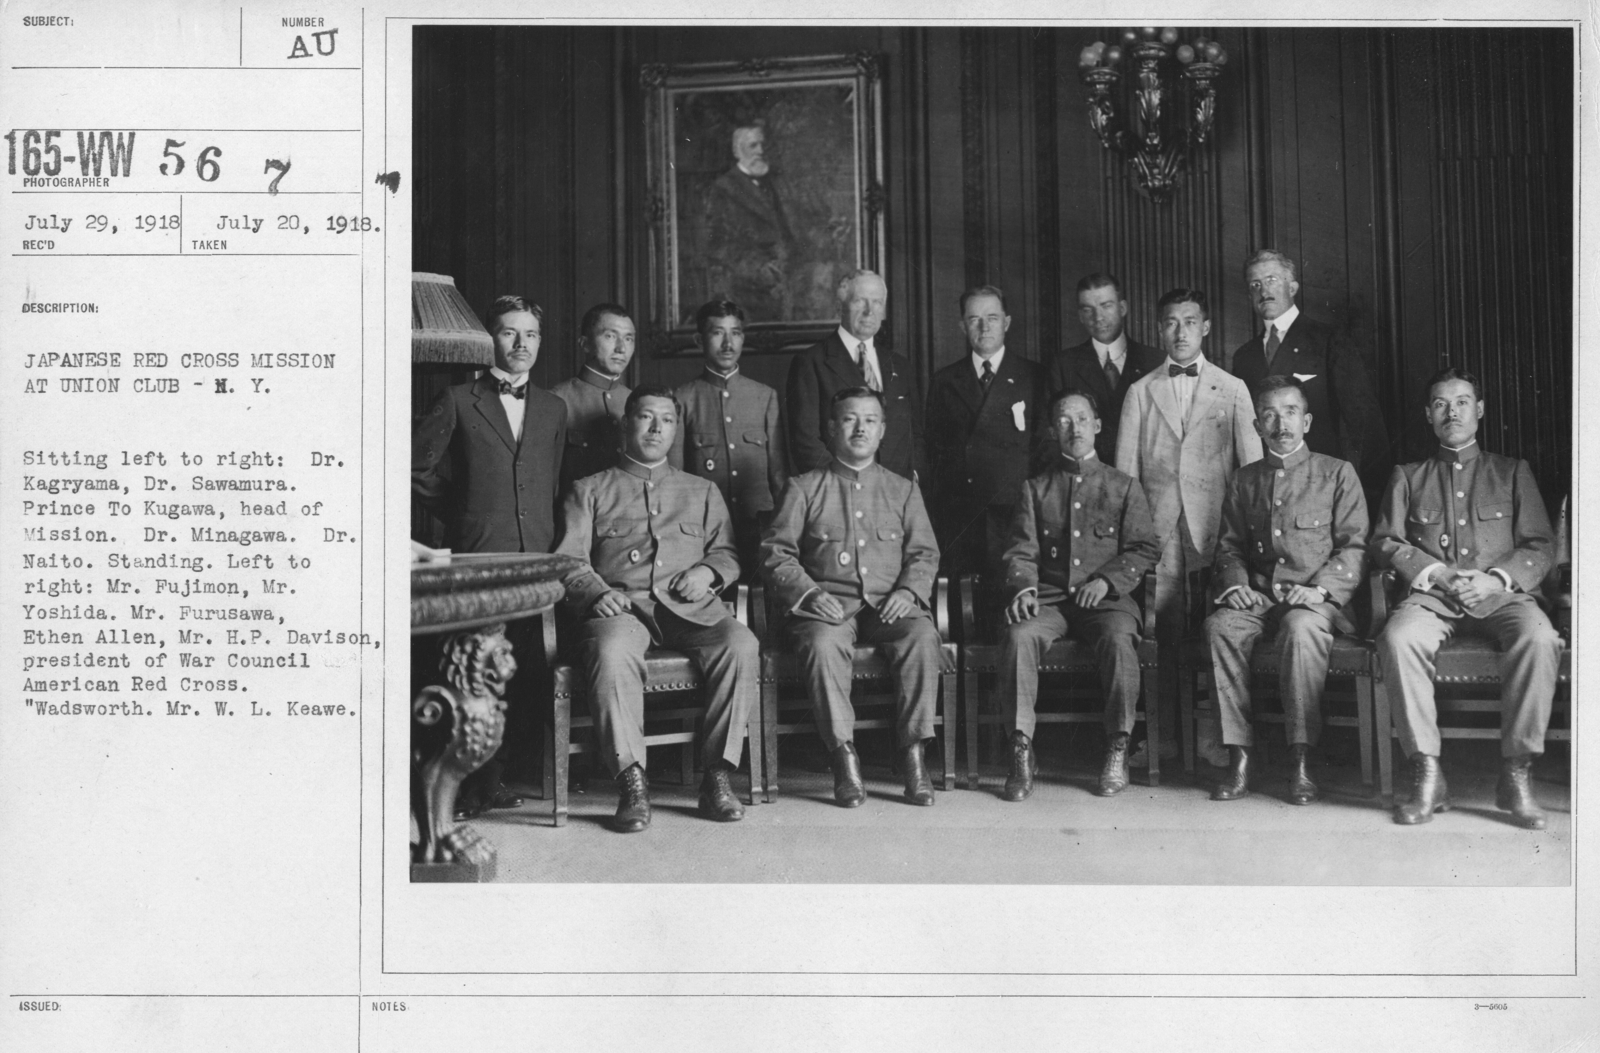 """American Red Cross - Groups - Japanese Red Cross Mission at Union Club, N.Y. Sitting left to right: Dr. Kagryama, Dr. Sawamura. Prince to Kugawa, head of Mission. Dr. Minagawa. Dr. Naito. Standing. Left to right: Mr. Furusawa, Ethen Allen, Mr. H.P. Davison, president of War Council American Red Cross. """"Wadsworth. Mr. W.L. Keawe."""""""